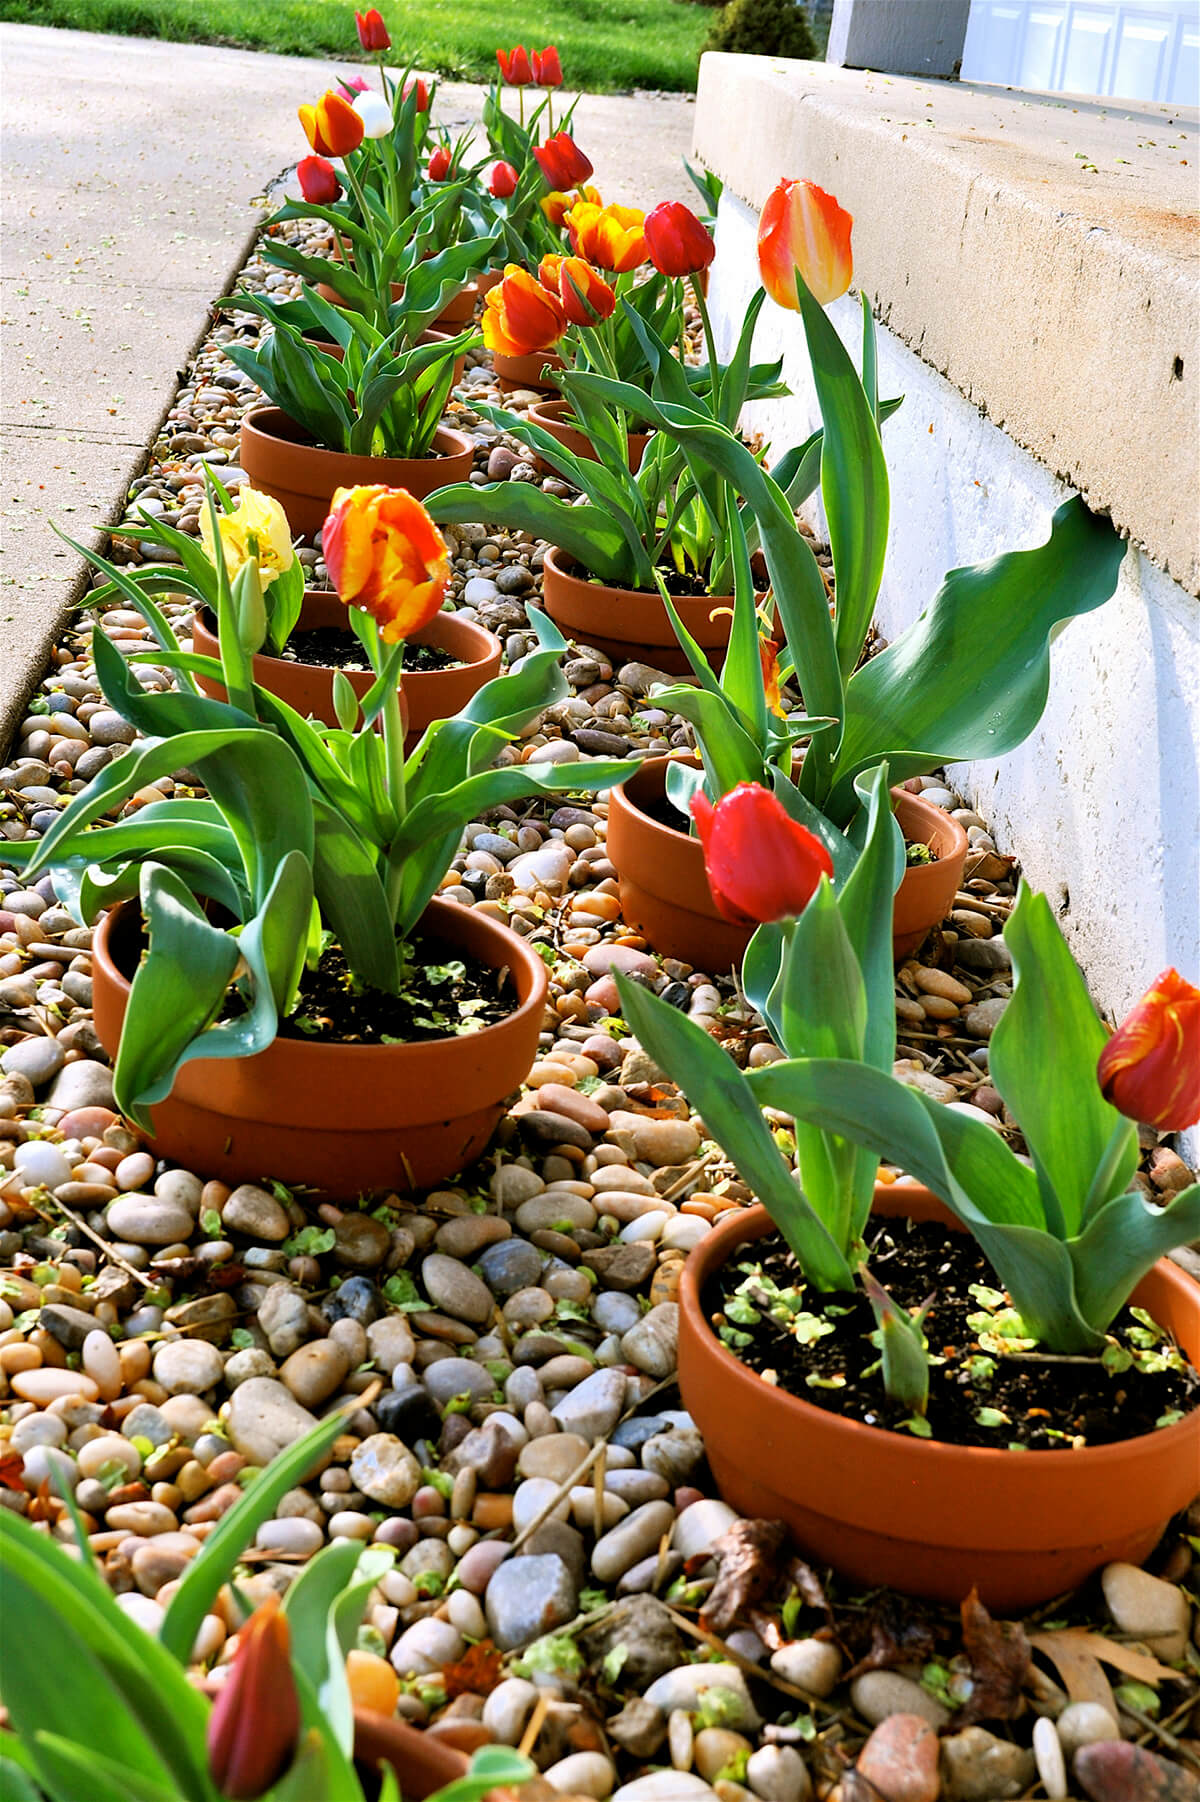 Flower Bed Ideas: Flower Bed with Clay Pots